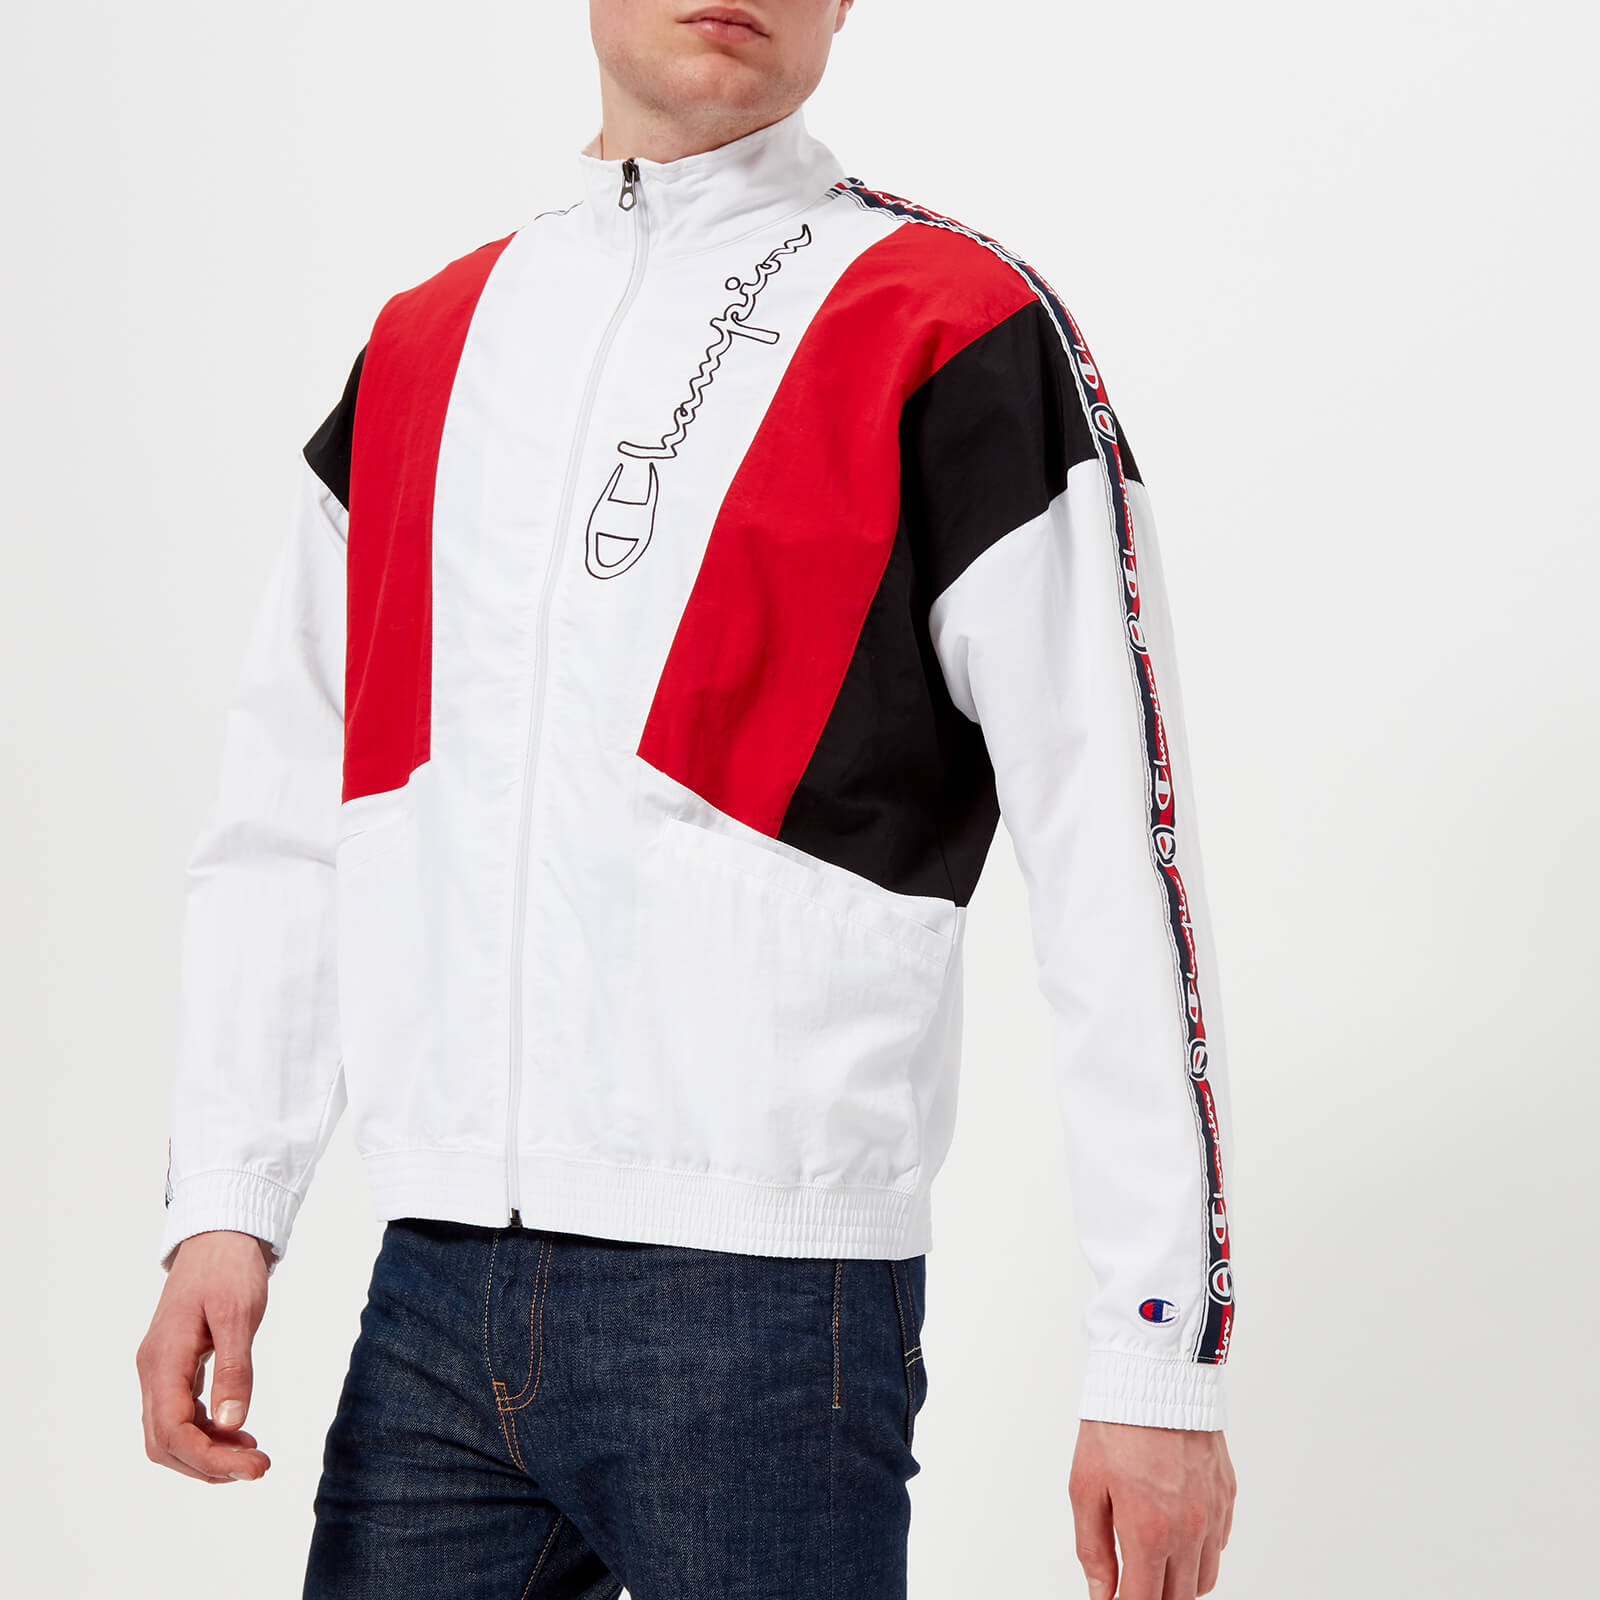 8d4658c7b9c9 Champion Men s Track Top - White Red Black - Free UK Delivery over £50